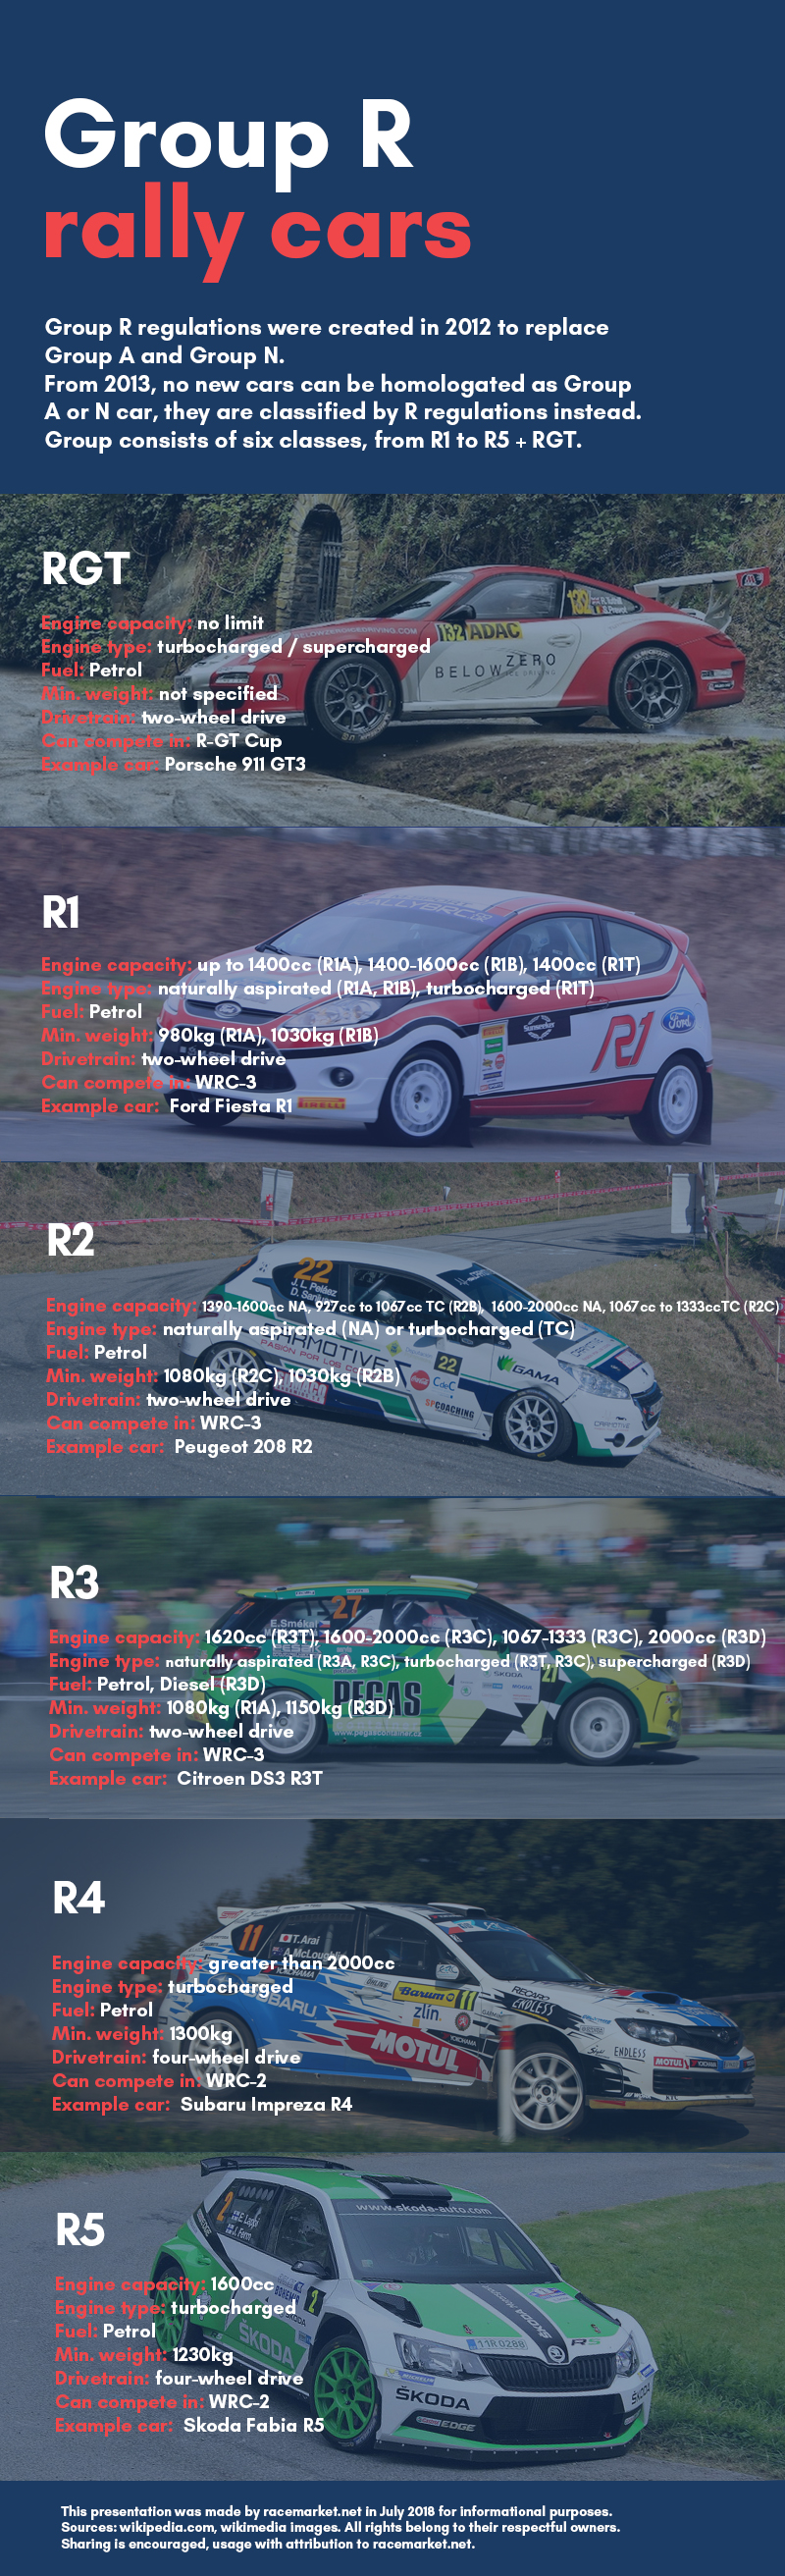 rally cars group r classes